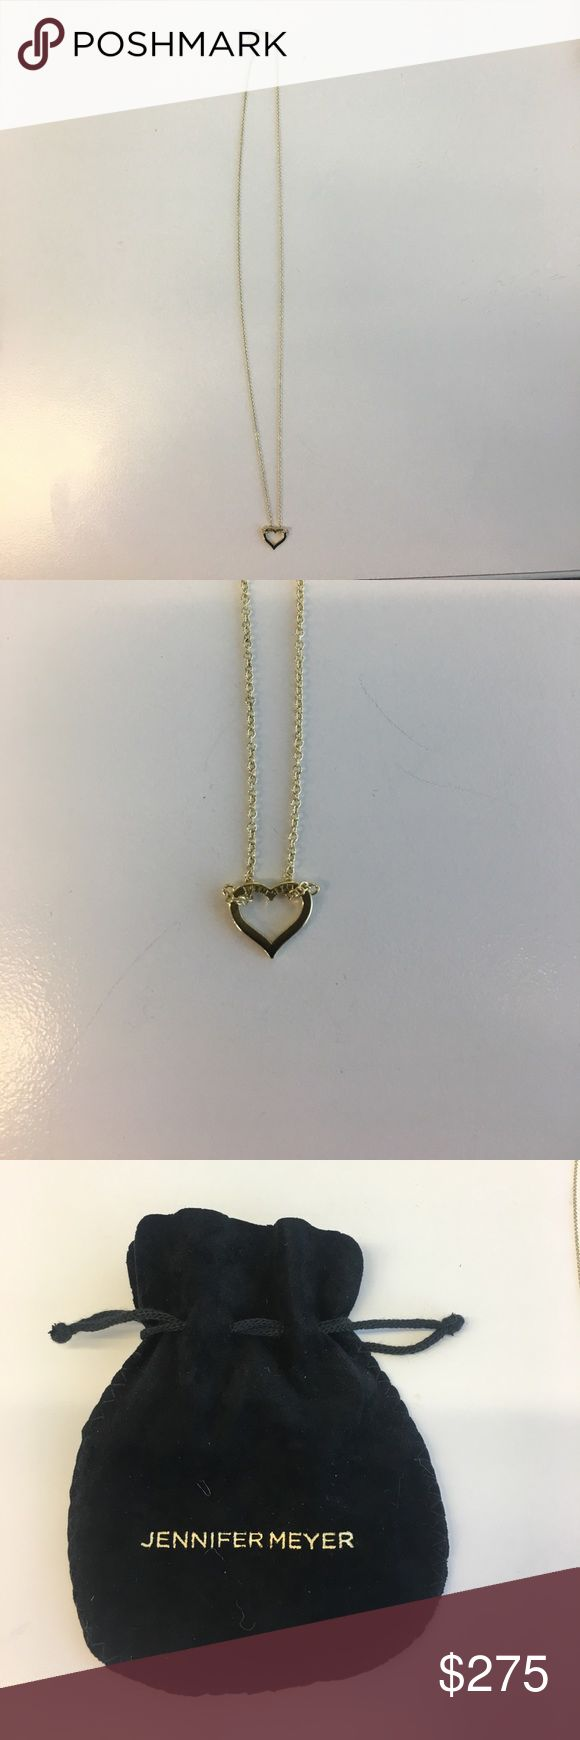 """Jennifer Meyer gold open heart necklace Delicate 18 kt yellow gold open heart that hangs from 14 kt 16"""" yellow gold chain.  Perfect for layering! Jennifer Meyer Jewelry Necklaces"""